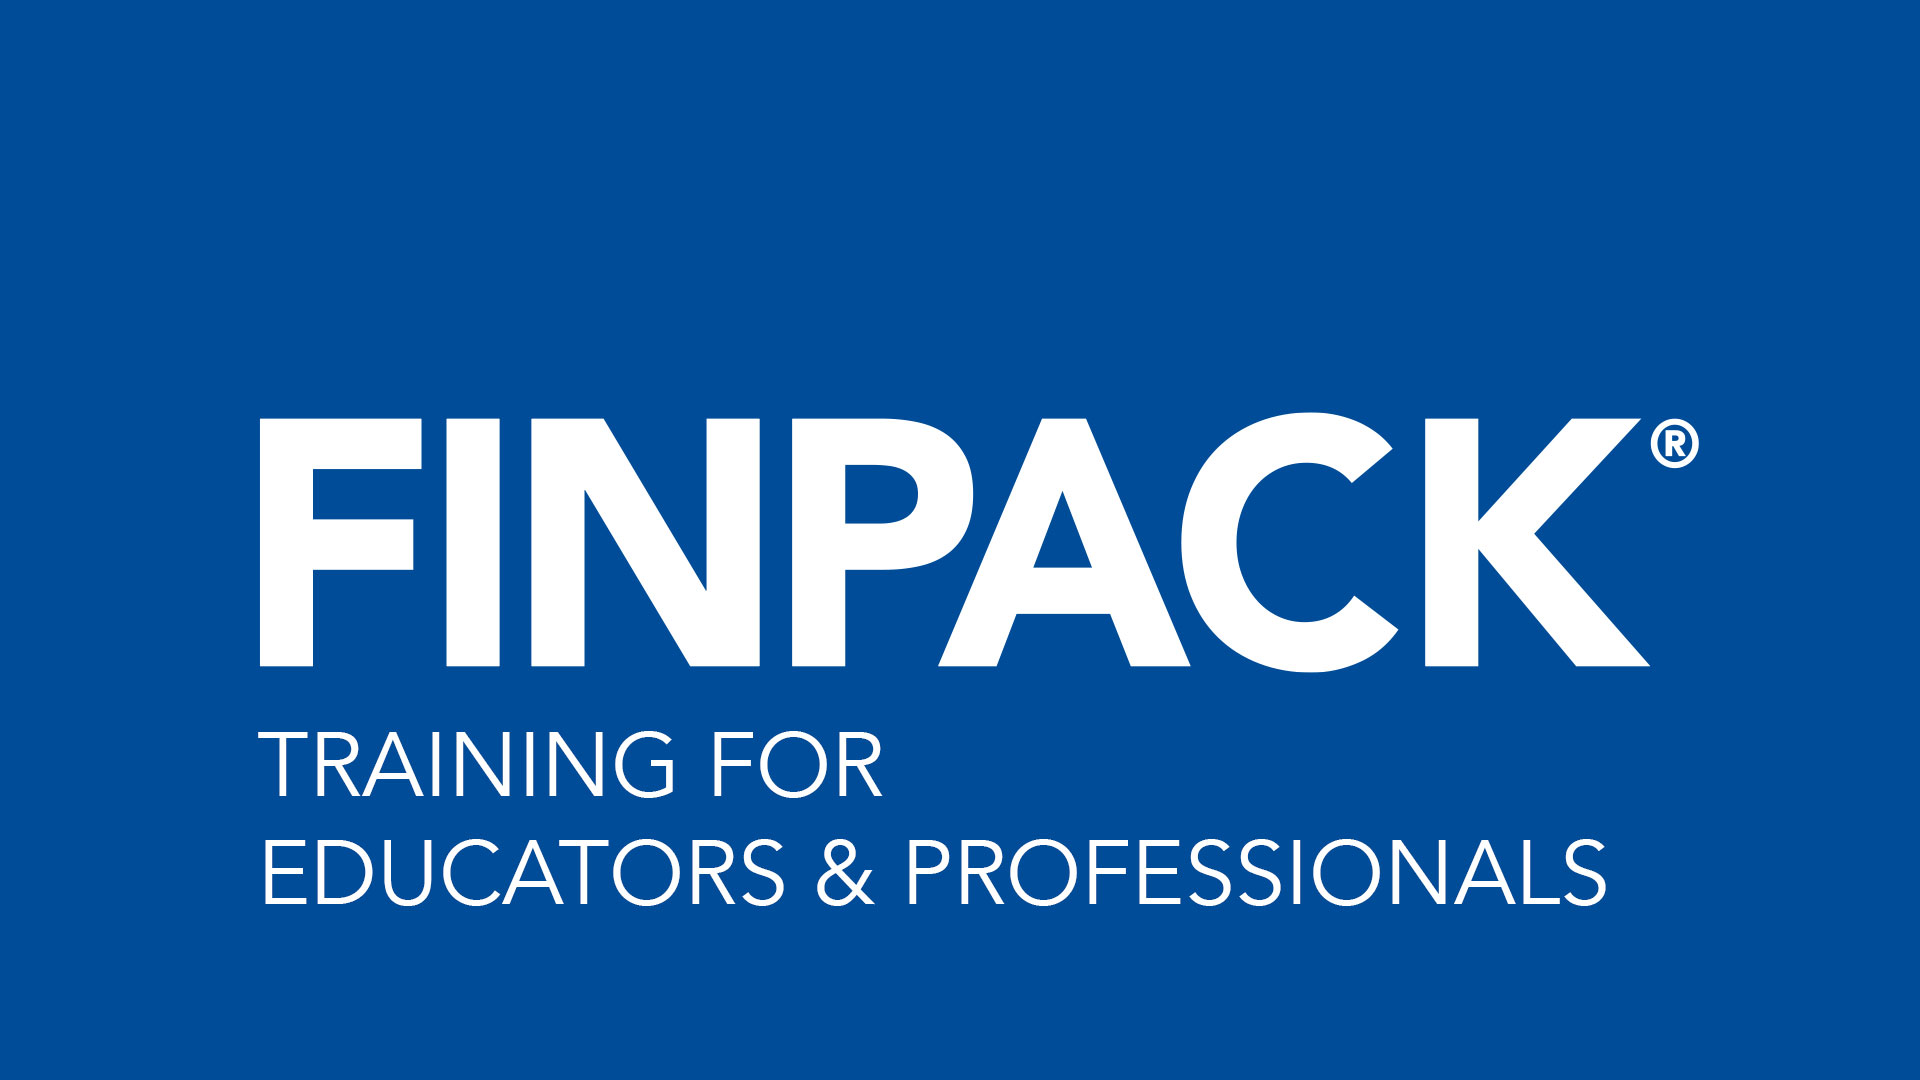 FINPACK Training for Educators and Professionals